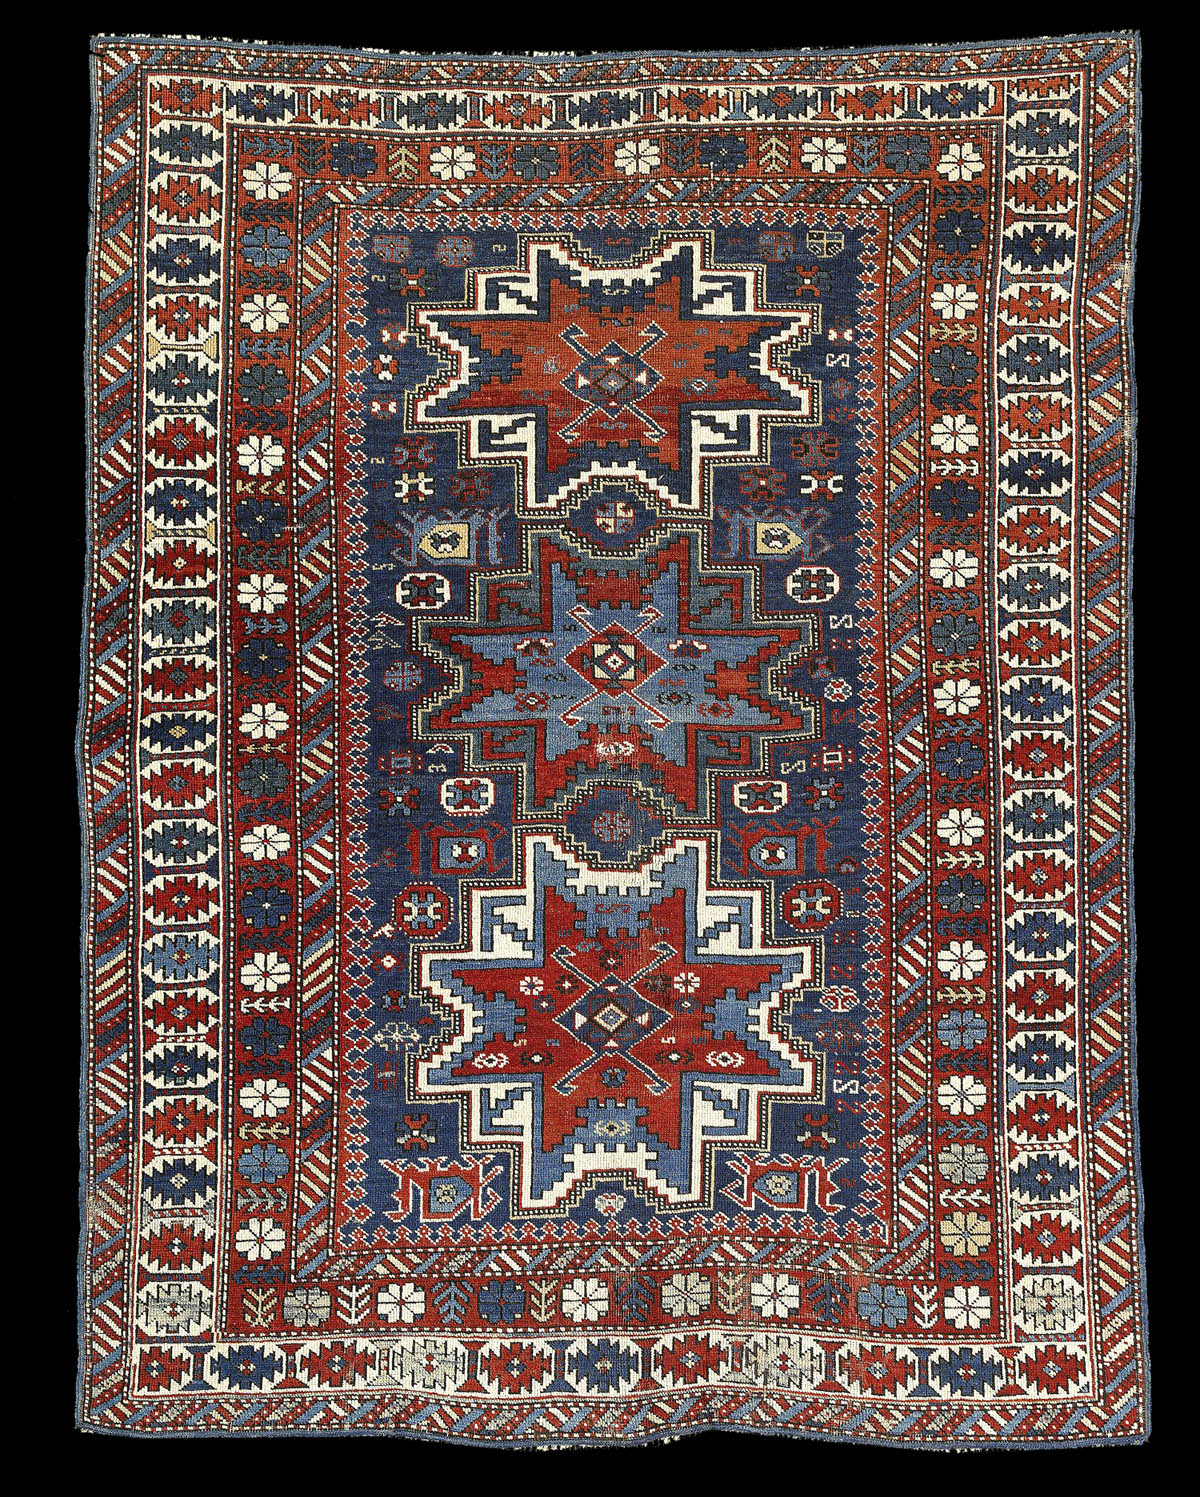 Antique Kuba rug, Azerbaijan rugs and carpets